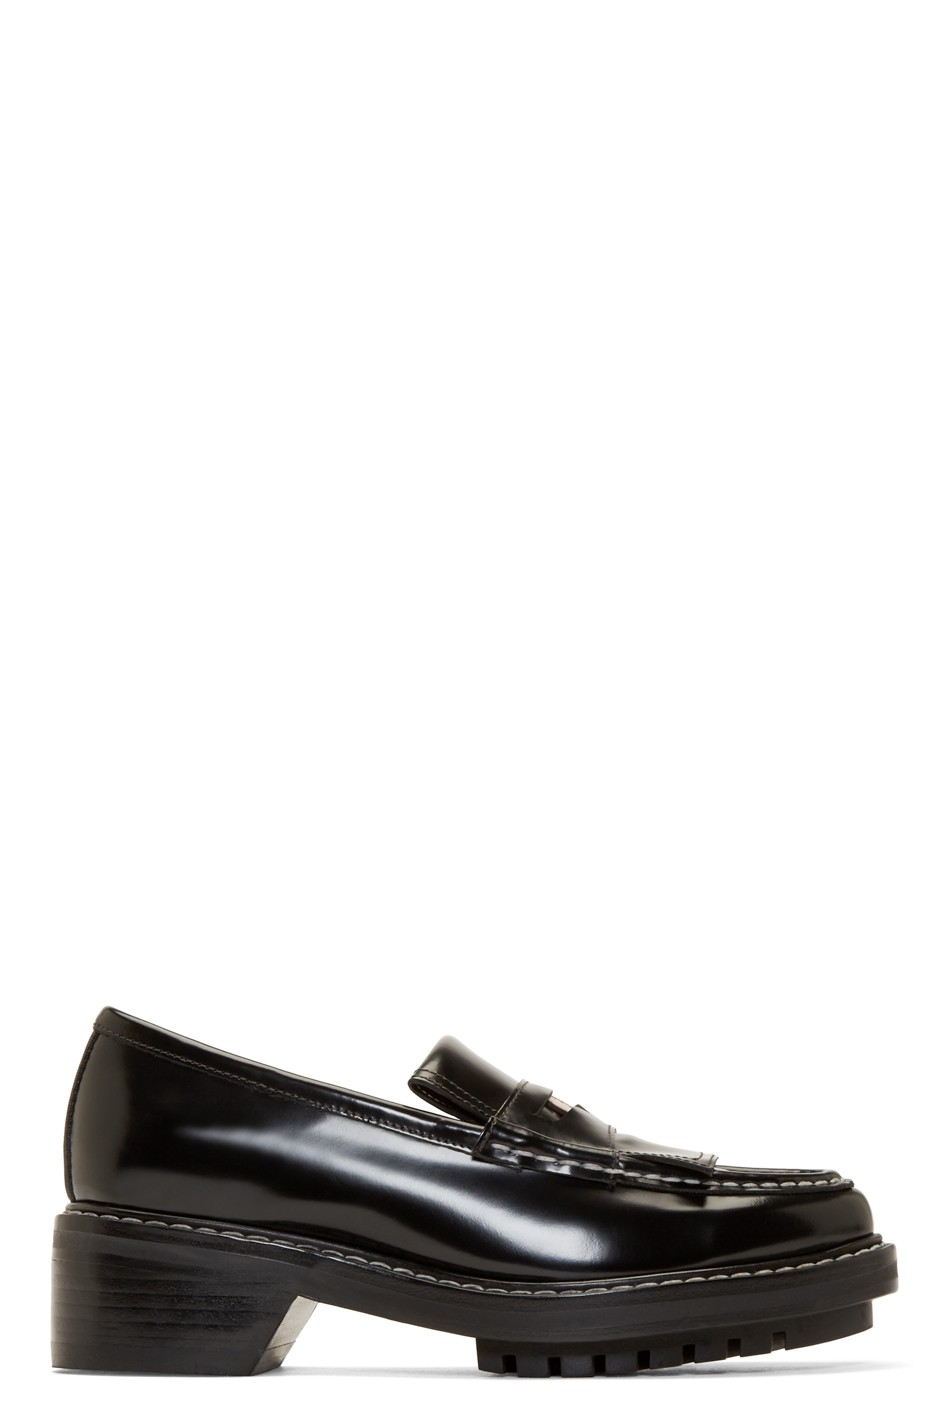 Rag And Bone Black Leather Anton Loafers